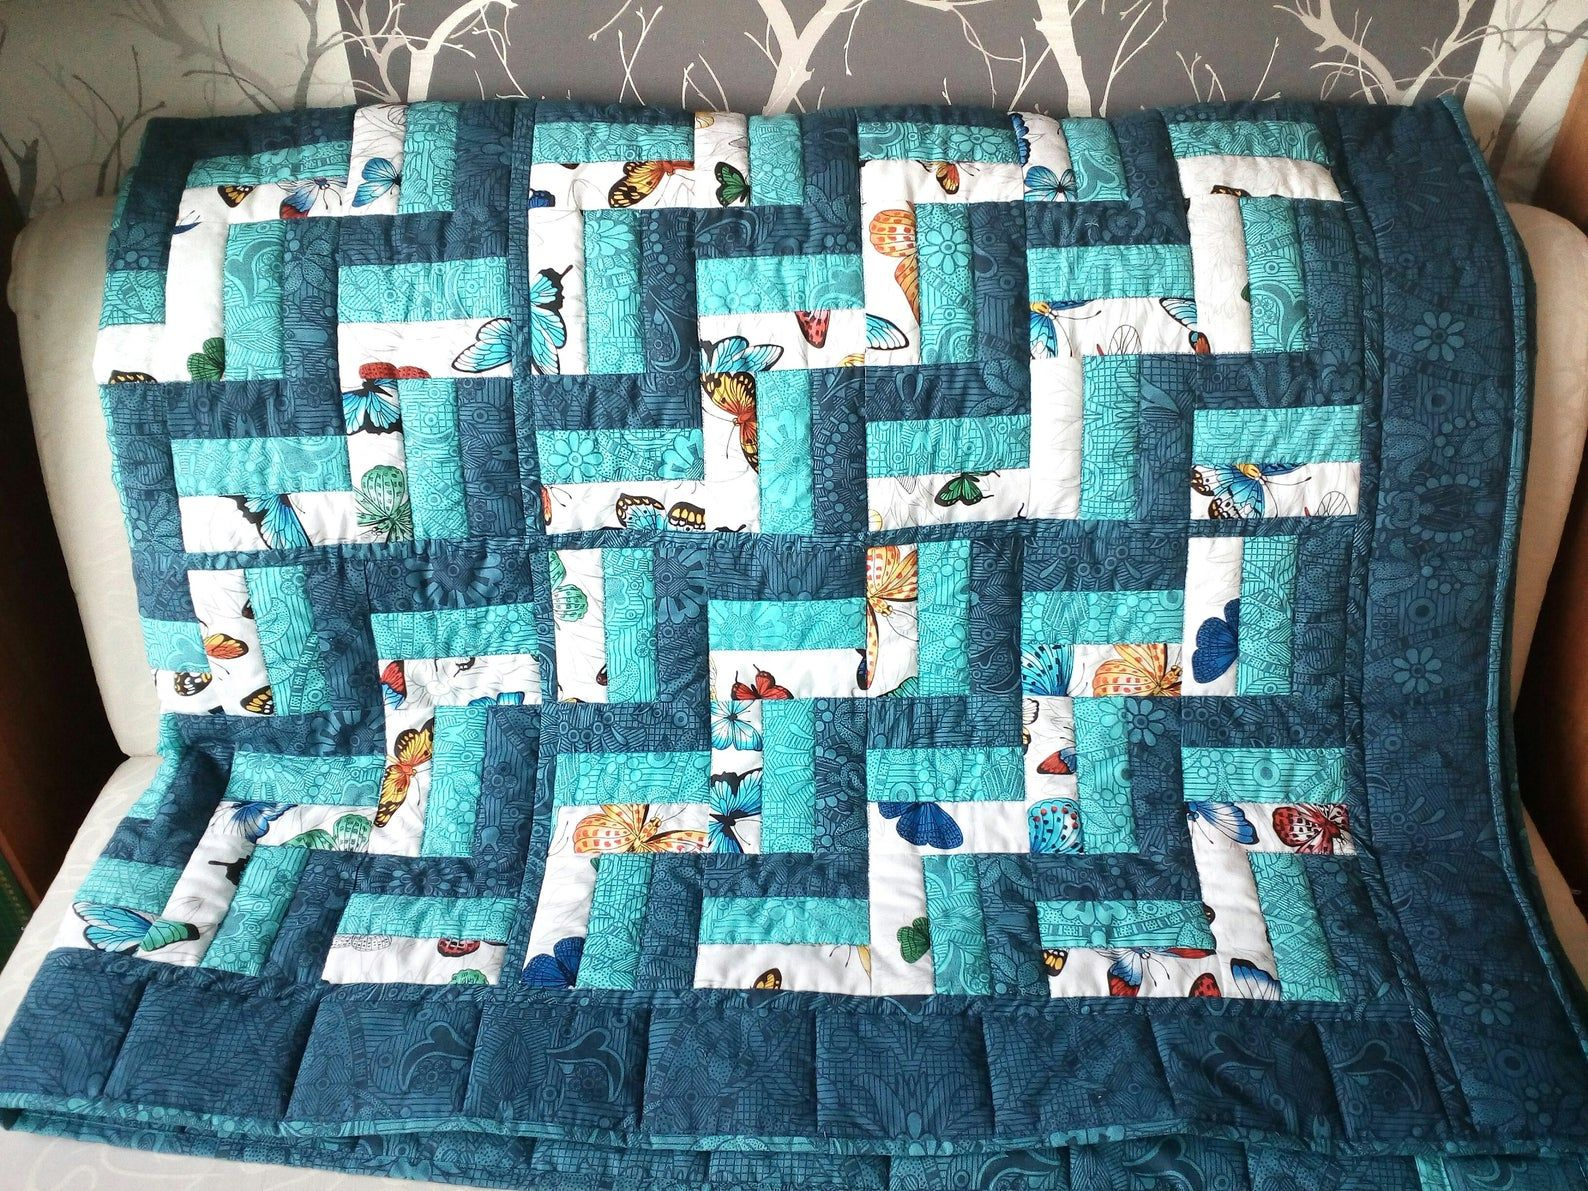 Homemade Quilt For Sale King Size Quilt For Sale Queen Size Etsy Homemade Quilts For Sale Homemade Quilts Quilts For Sale Quilts for sale king size